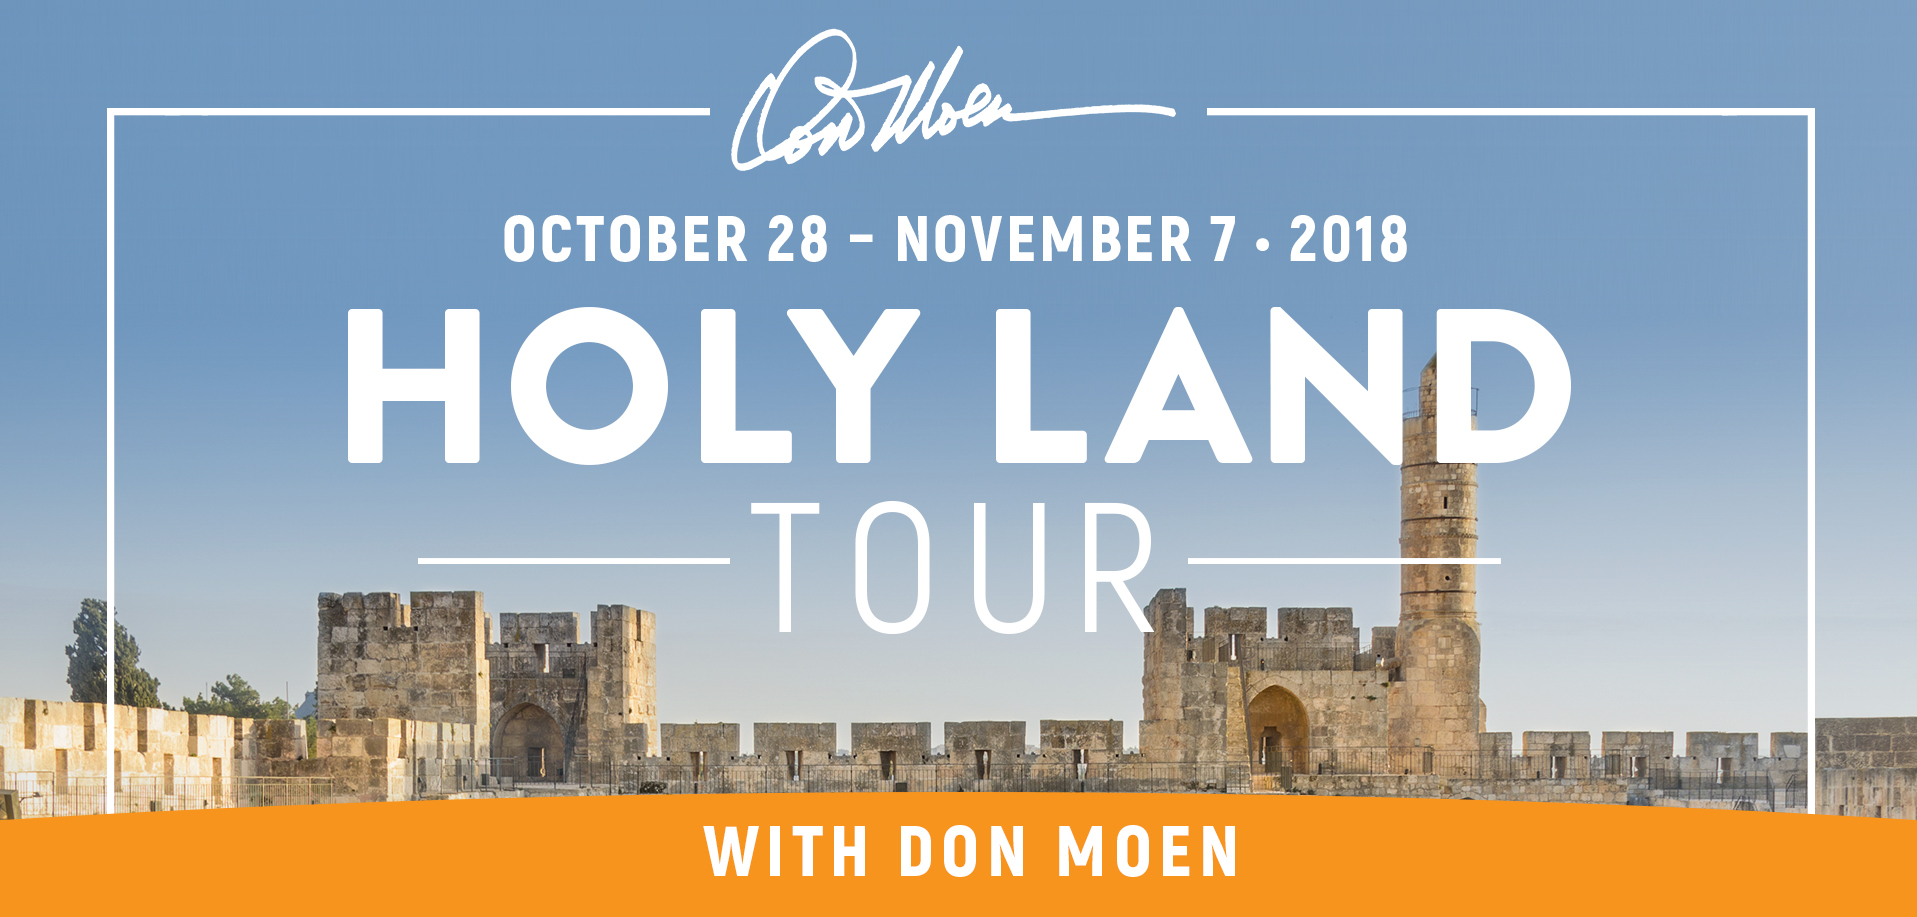 Take a Christian TourWOX with Don Moen - Christian Tour to Israel - October 28 - November 7, 2018